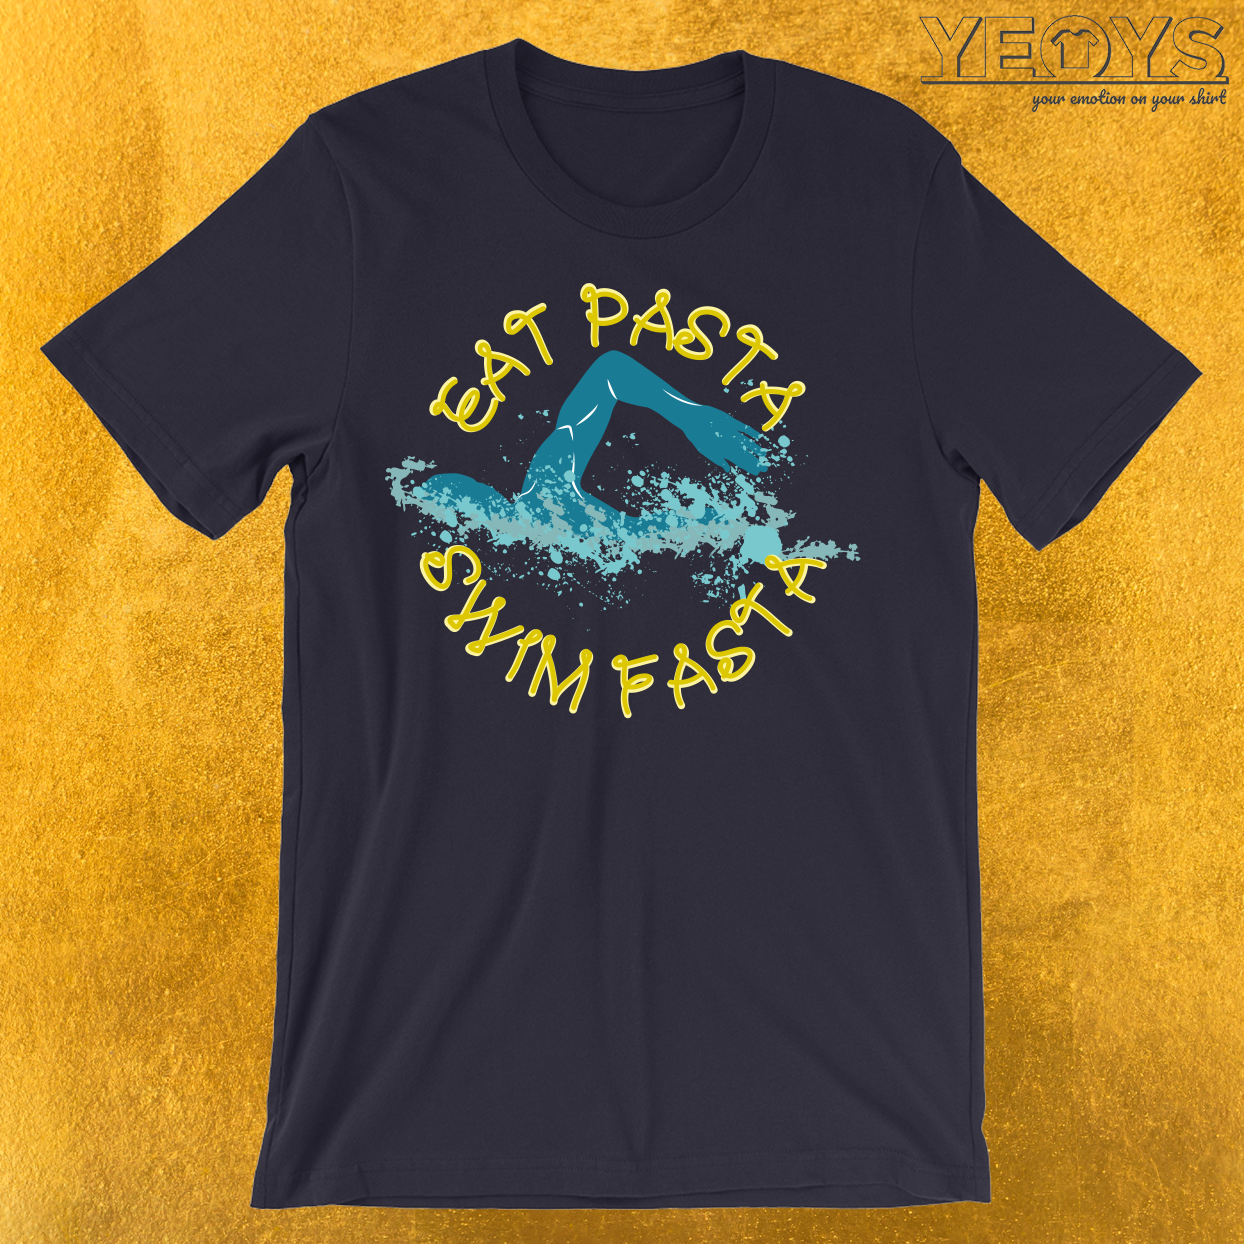 Eat Pasta Swim Fasta Swimming Pun T-Shirt